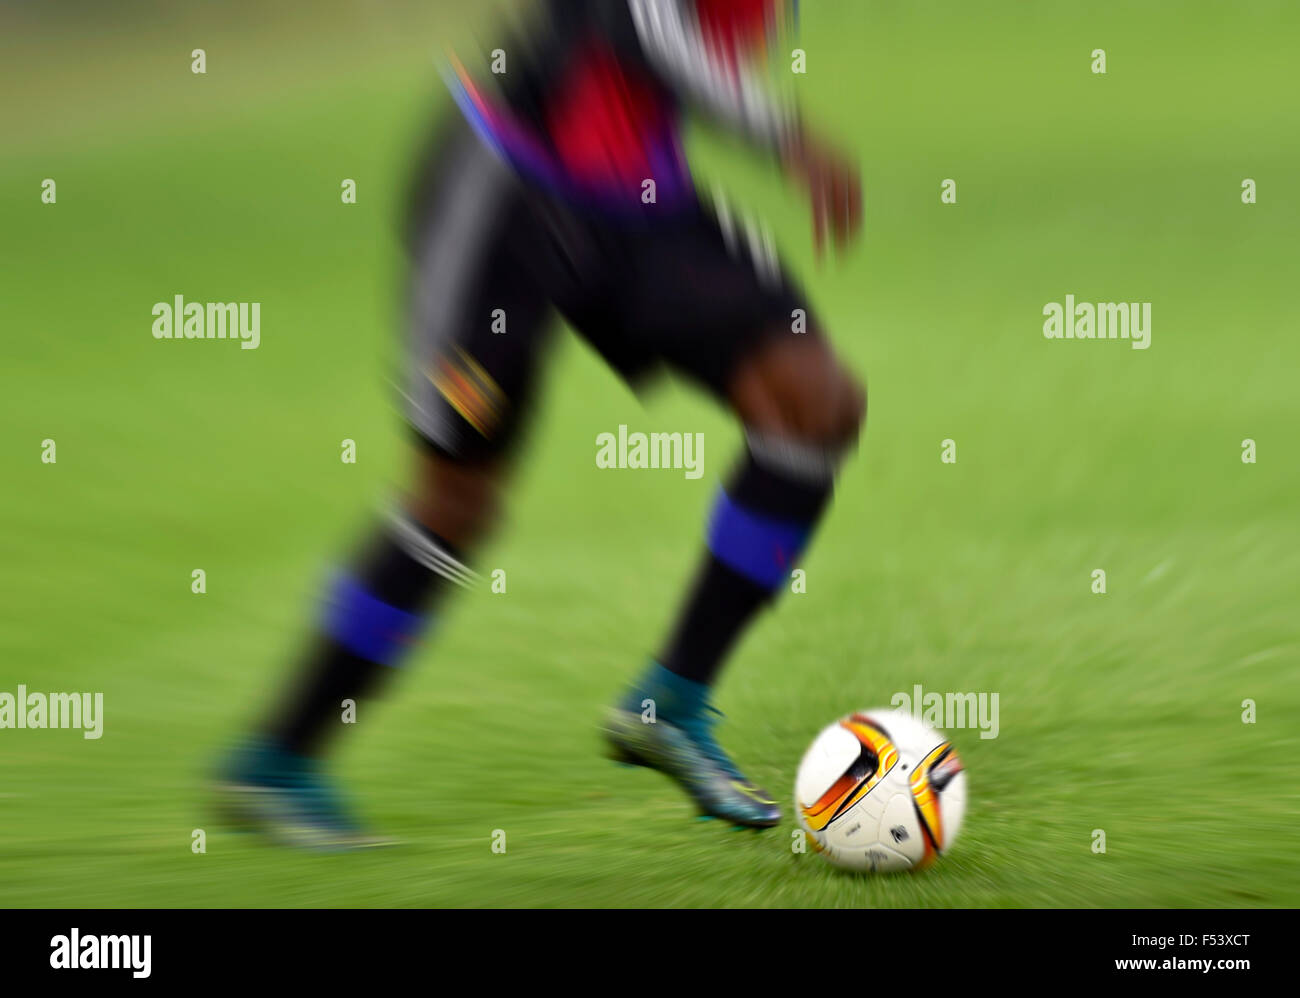 Football and the legs of a soccer player, zoomed, Basel, Switzerland - Stock Image